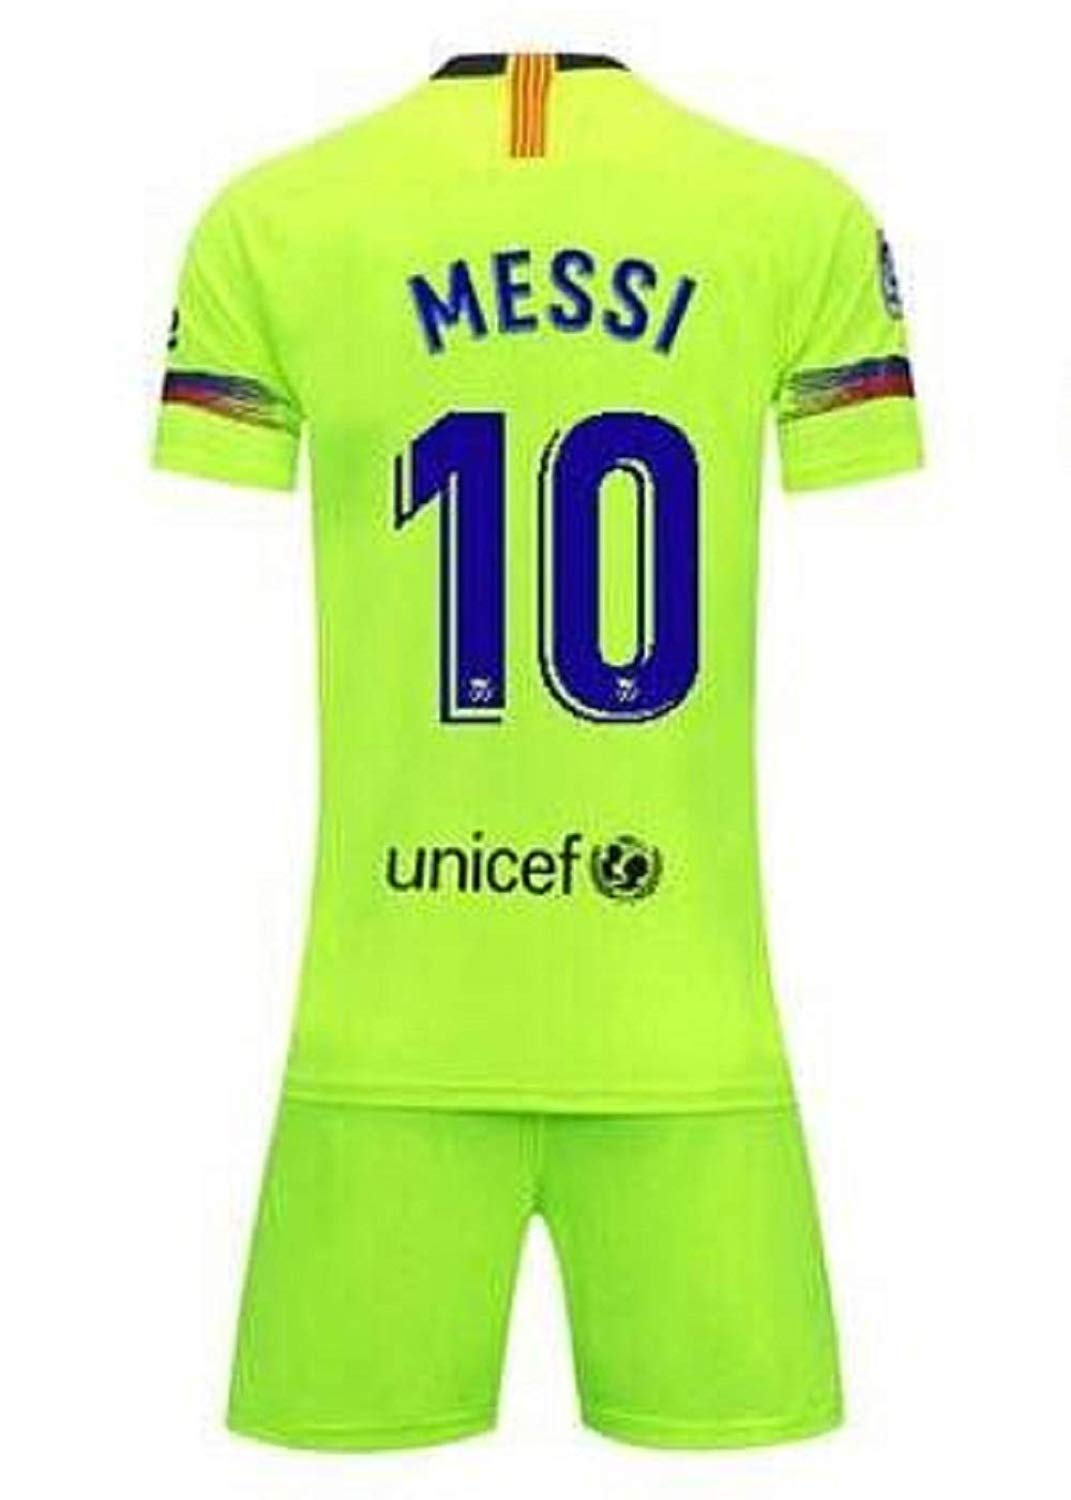 ad81693b2c5 Get Quotations · Lakivde Kids Messi New Away Jerseys 18-19 Barcelona  10  Football Jersey Soccer Jersey